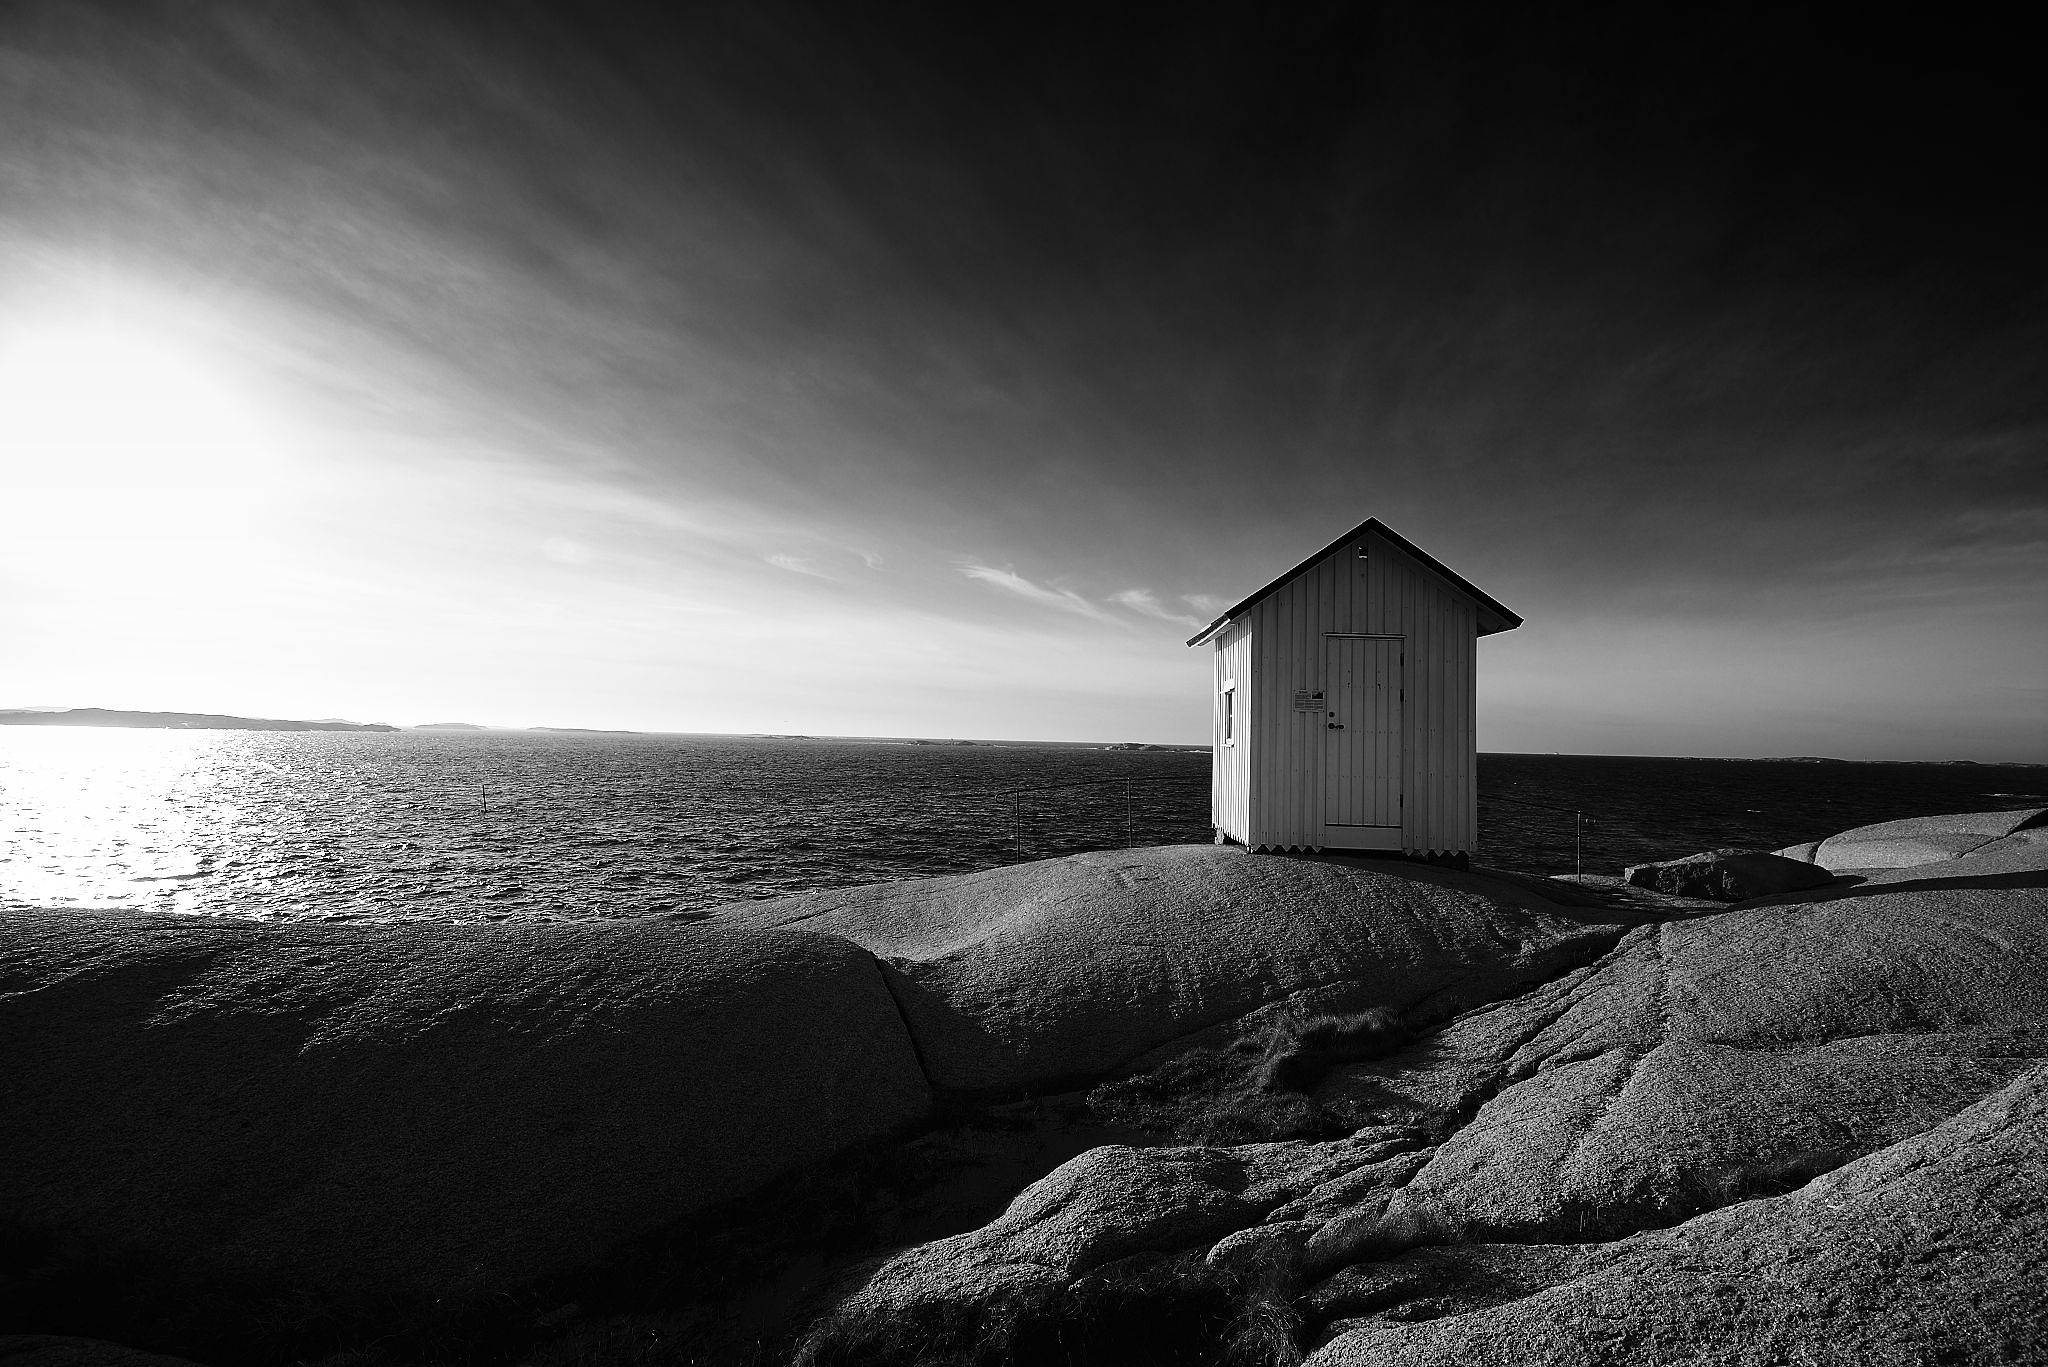 House by water by johan.dahlman.7